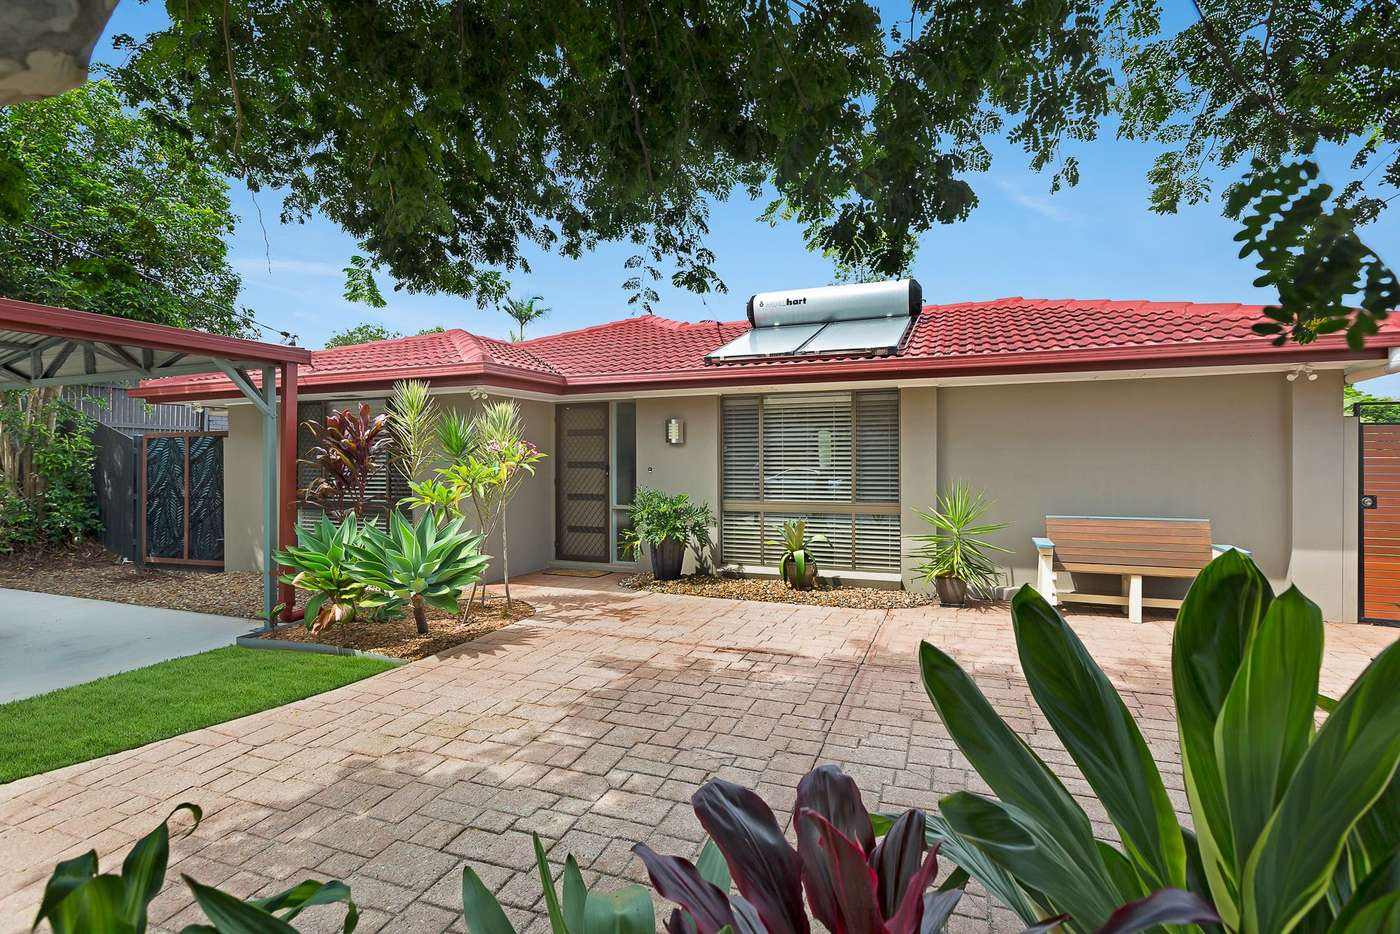 Main view of Homely house listing, 4 Barrine Court, Petrie QLD 4502